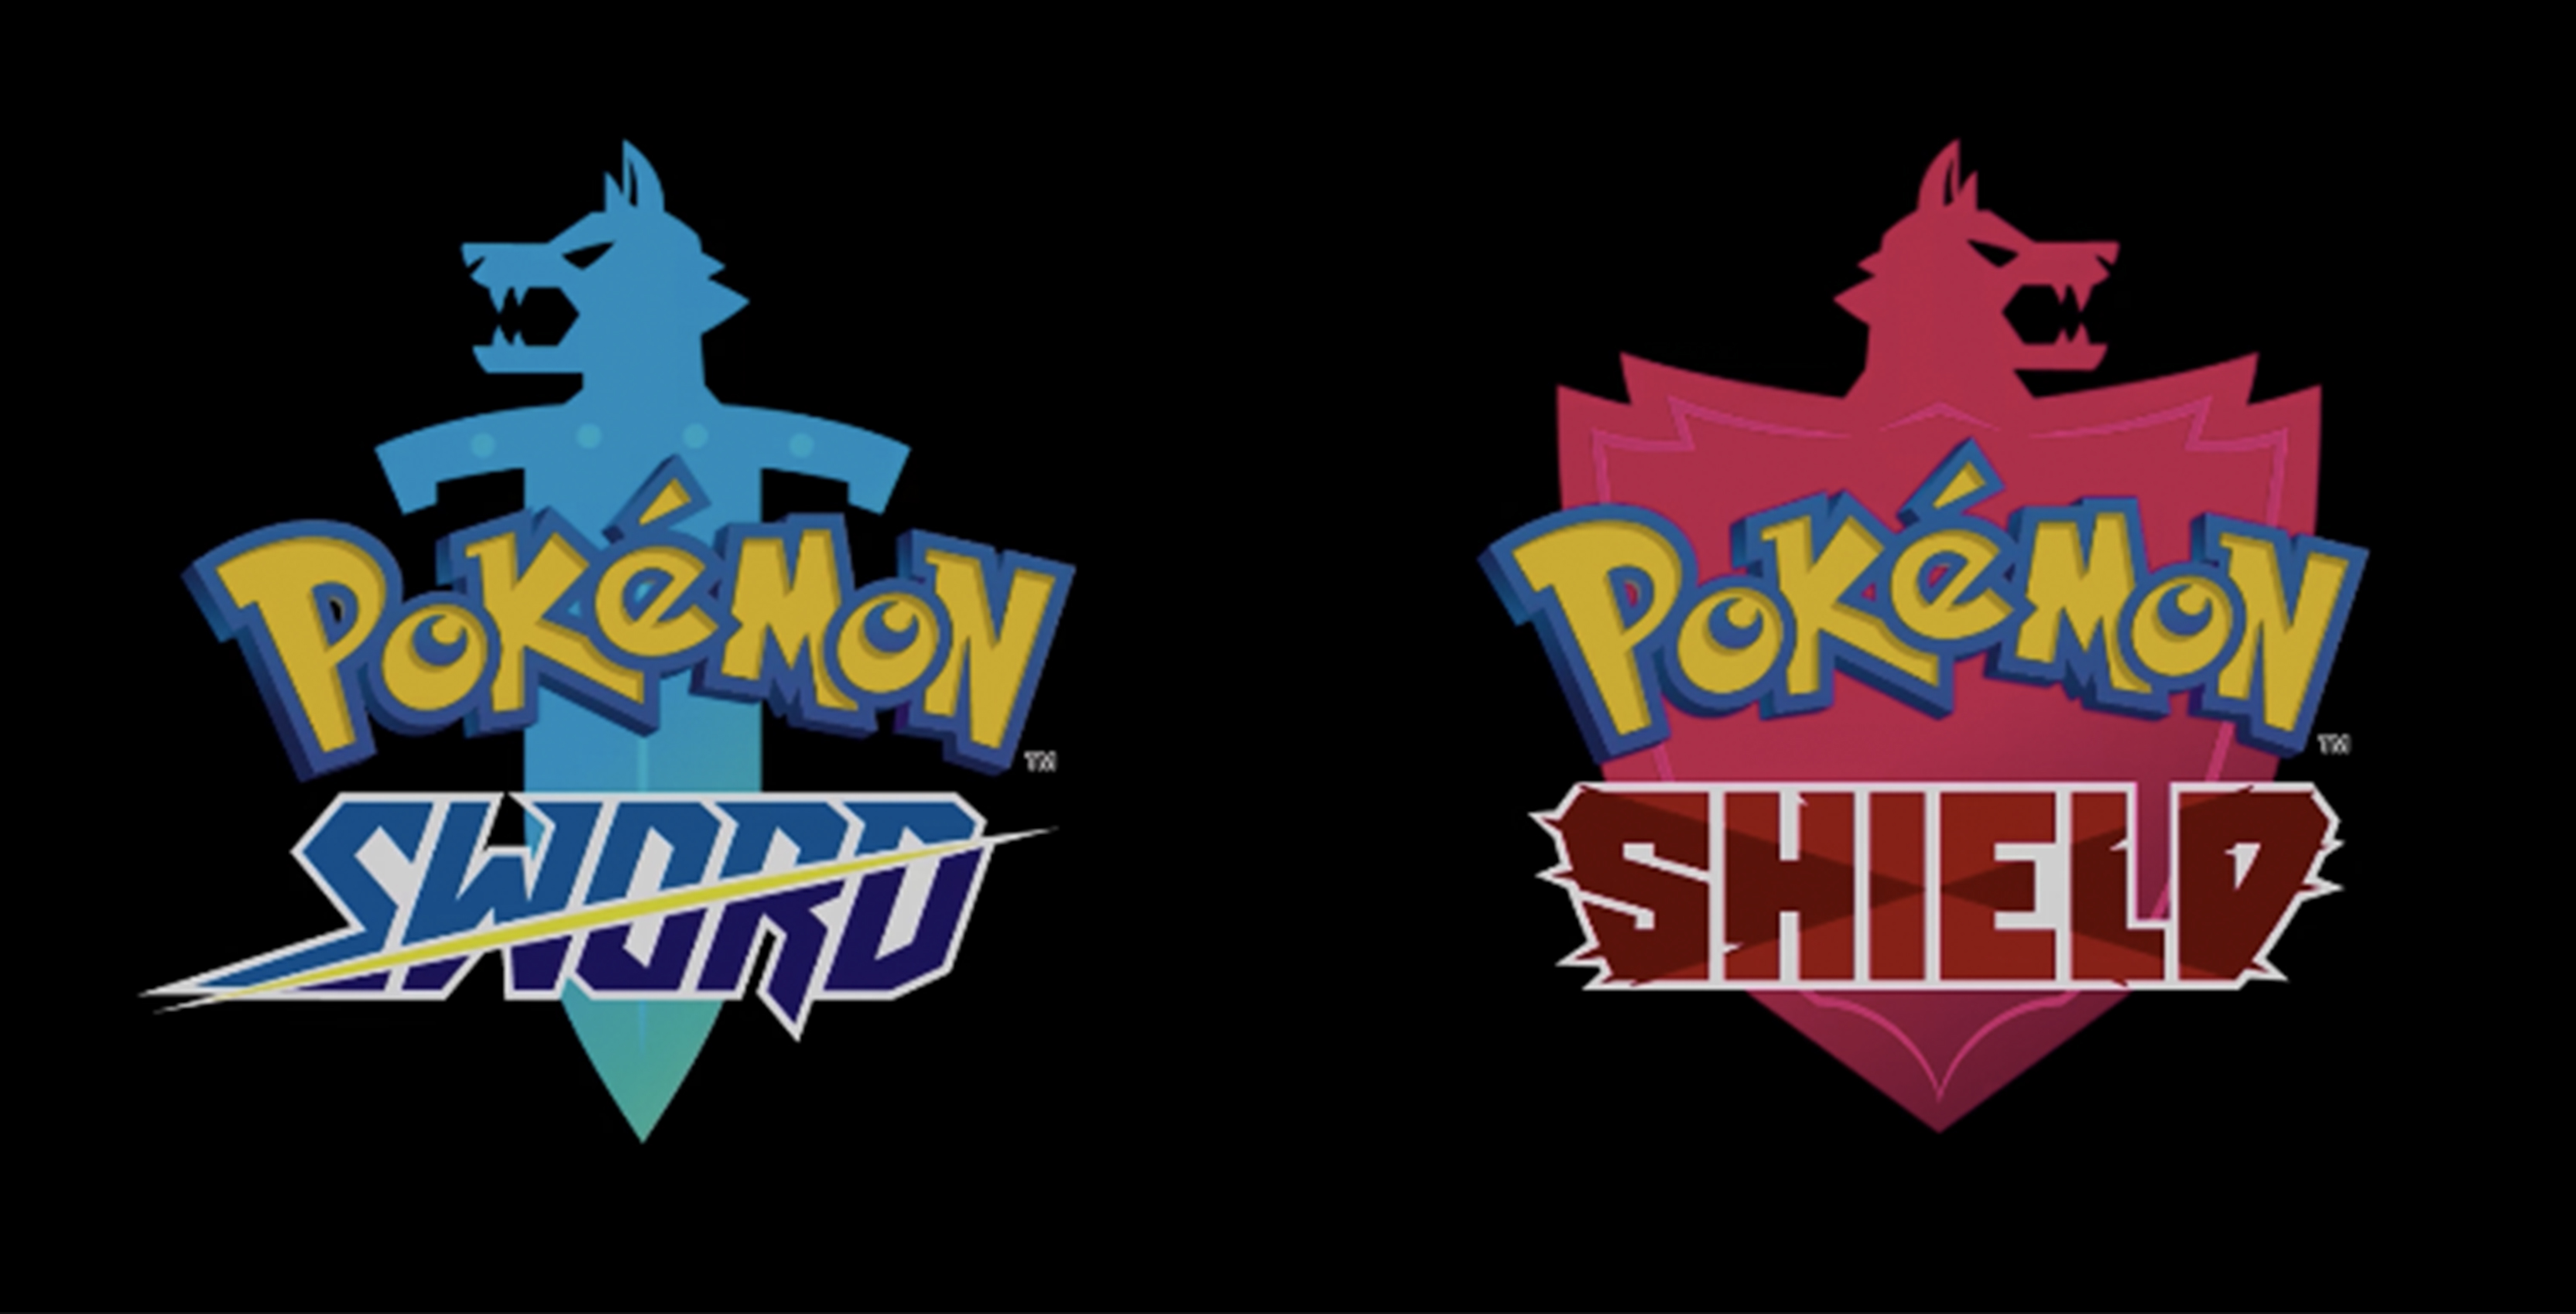 Pokémon 'Sword' and 'Shield' coming to Nintendo Switch later